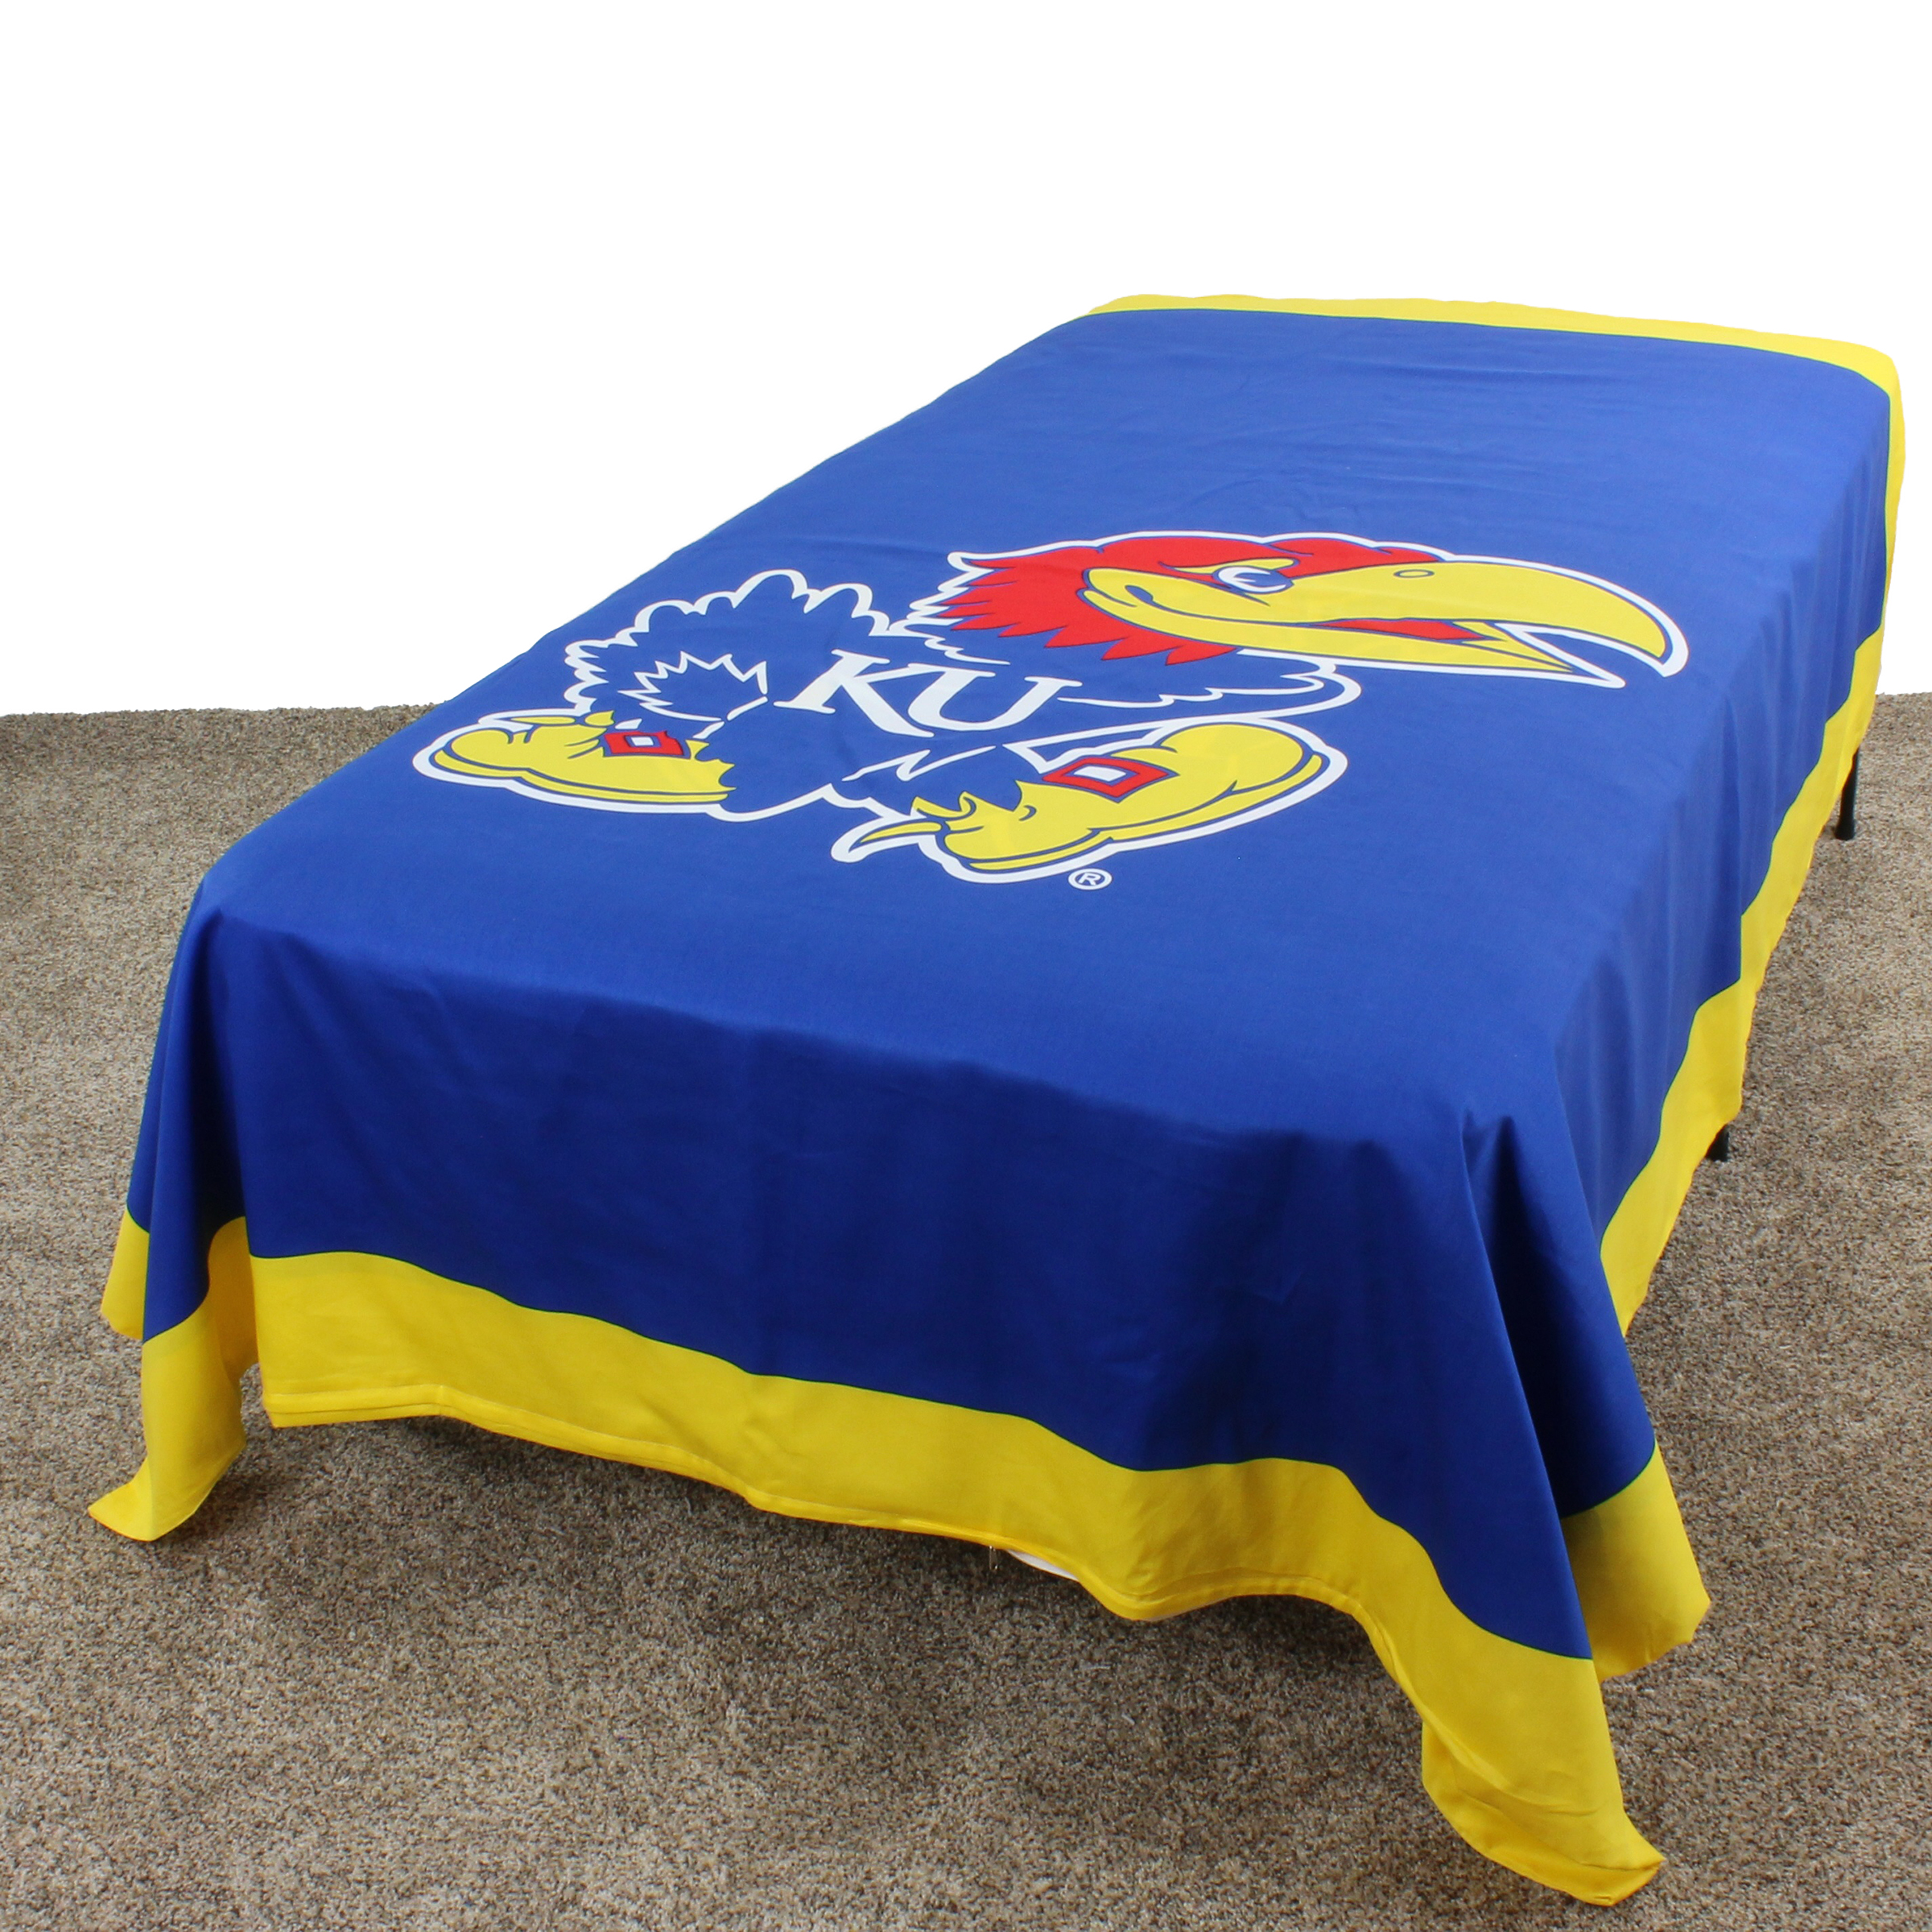 "Kansas Jayhawks Duvet Cover / Summer Blanket, 2 Sided Reversible, 100% Cotton, 68"" x 86"", Twin"